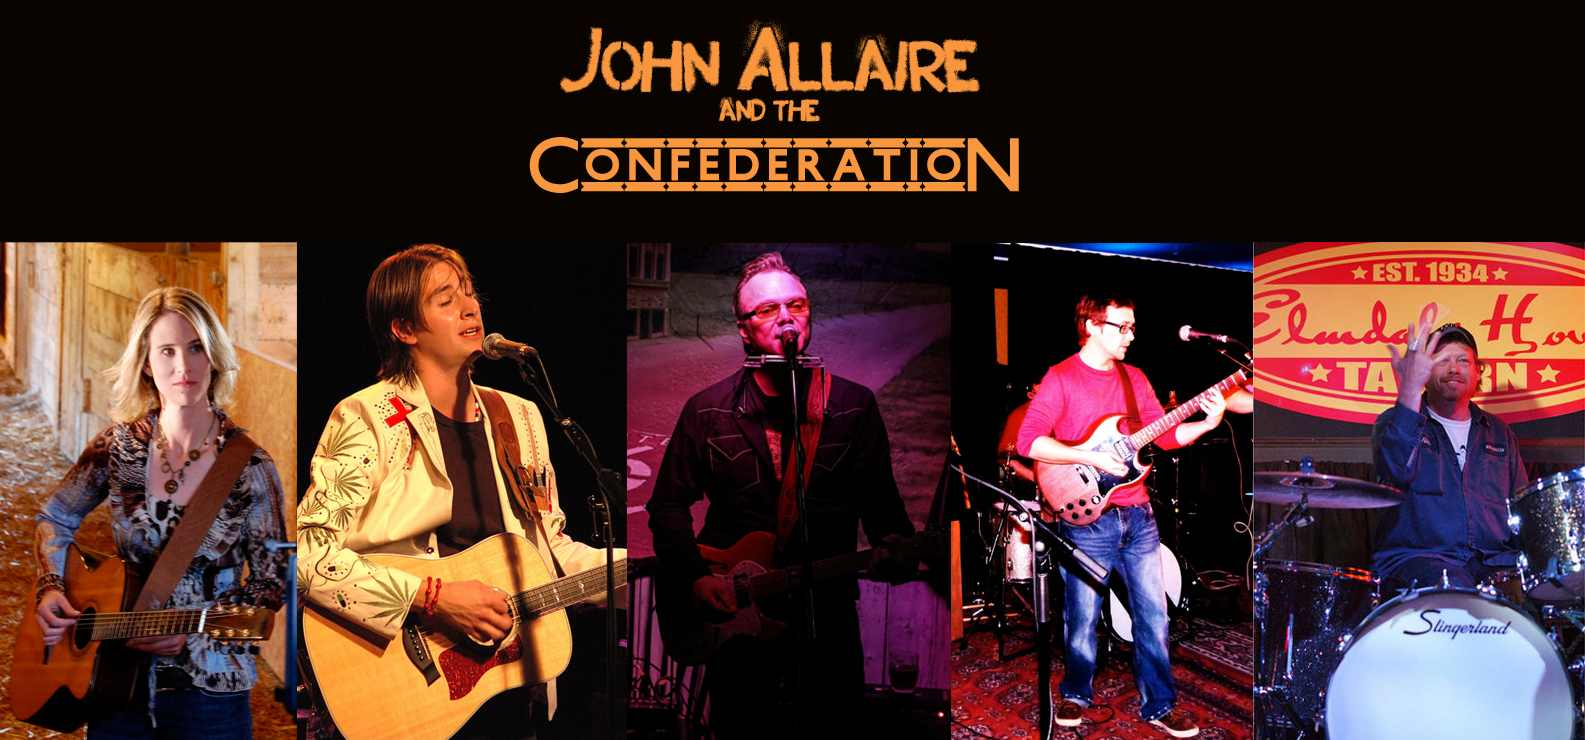 SOUND SEEKERS: John Allaire and the Confederation bring strings and sticks and other skills to Irene's Pub